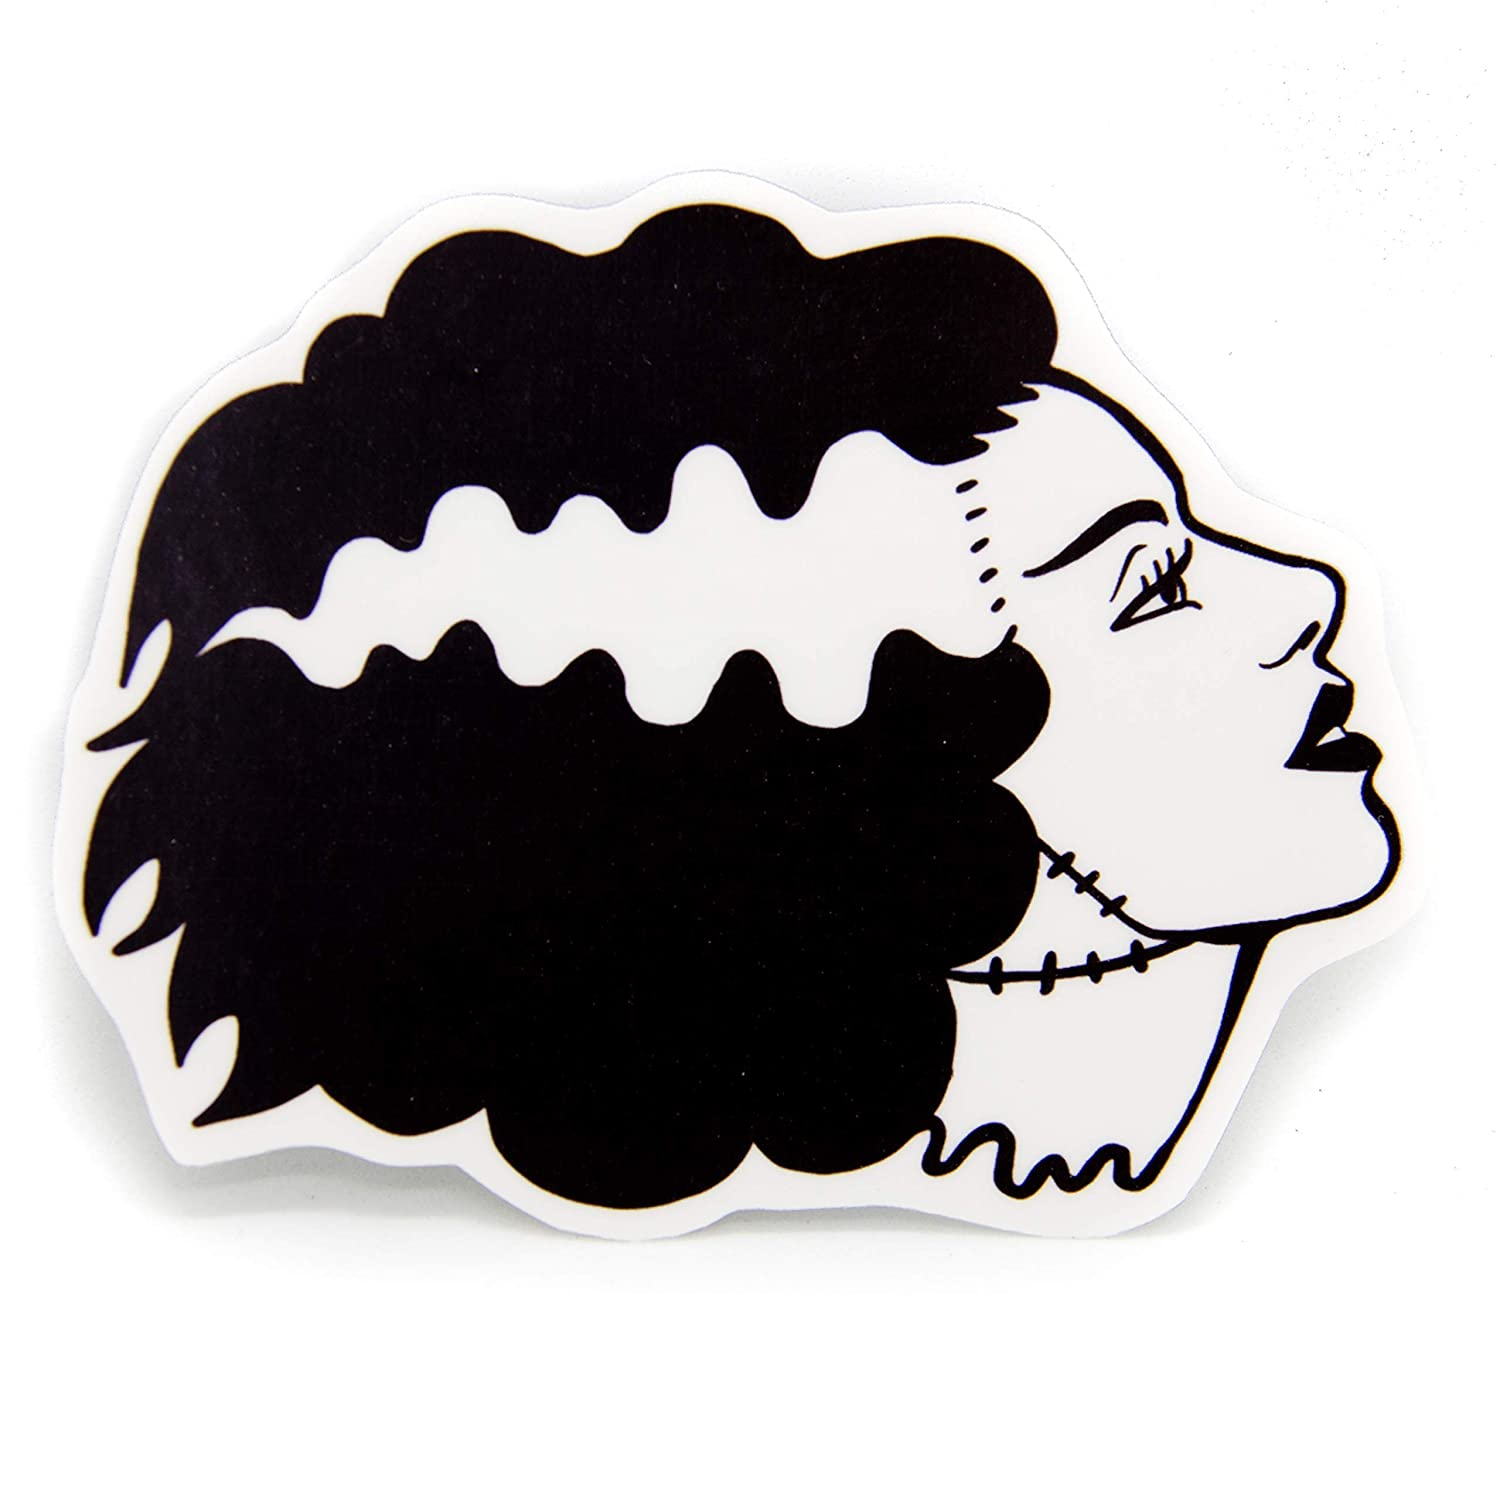 Ectogasm Bride of Frankenstein Waterproof Vinyl Sticker - Goth Horror Movie Decal